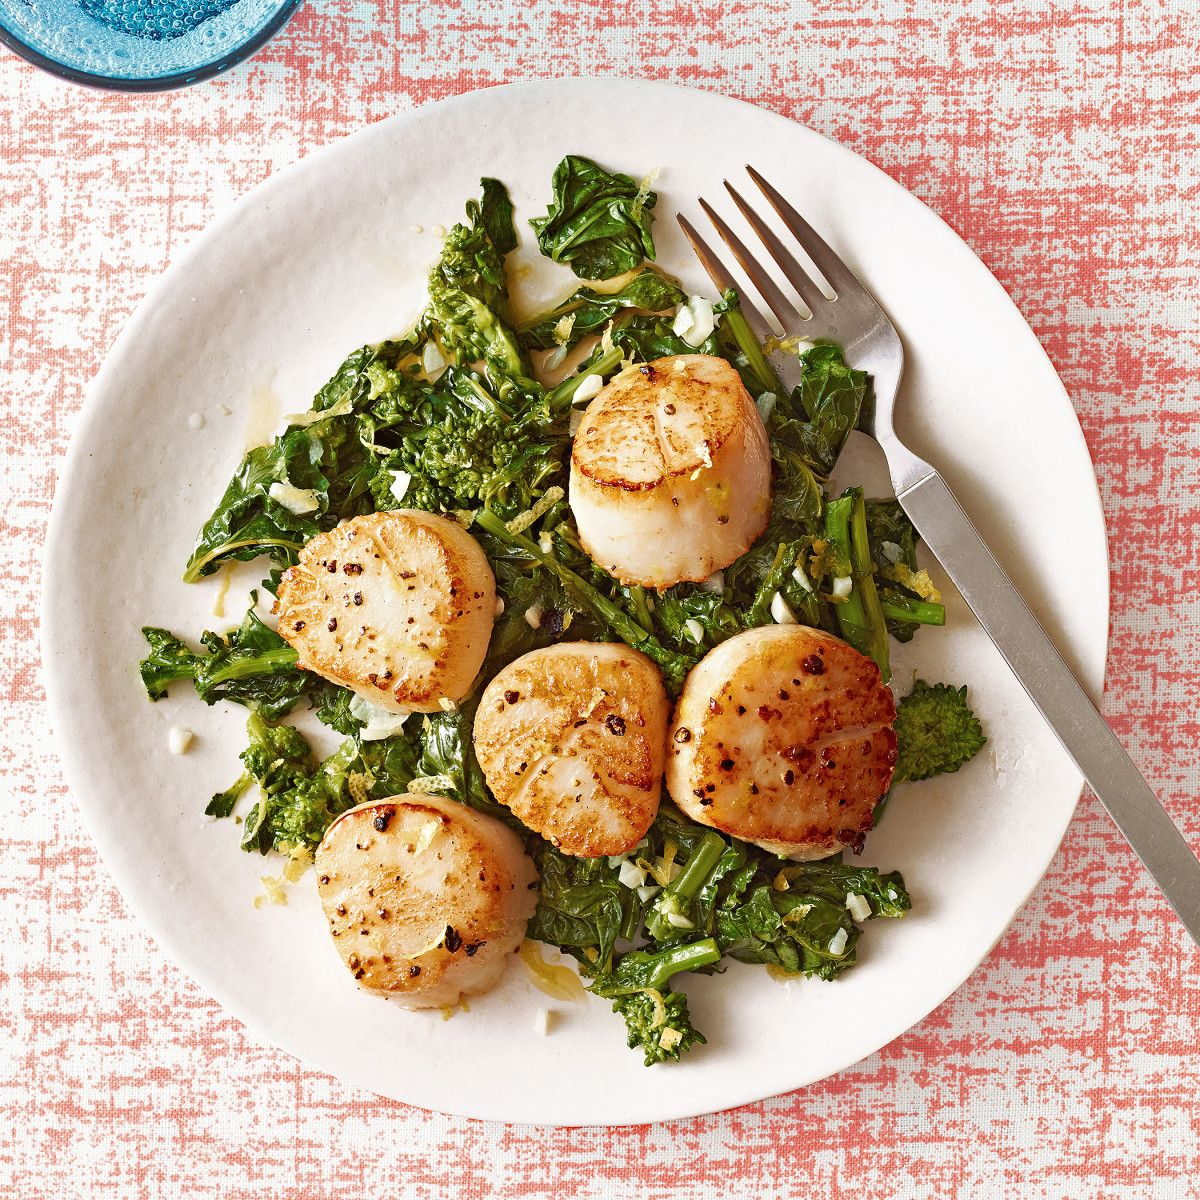 Scallops With Lemony Broccoli Rabe Recipe Cooking Seafood Seafood Dinner Broccoli Rabe